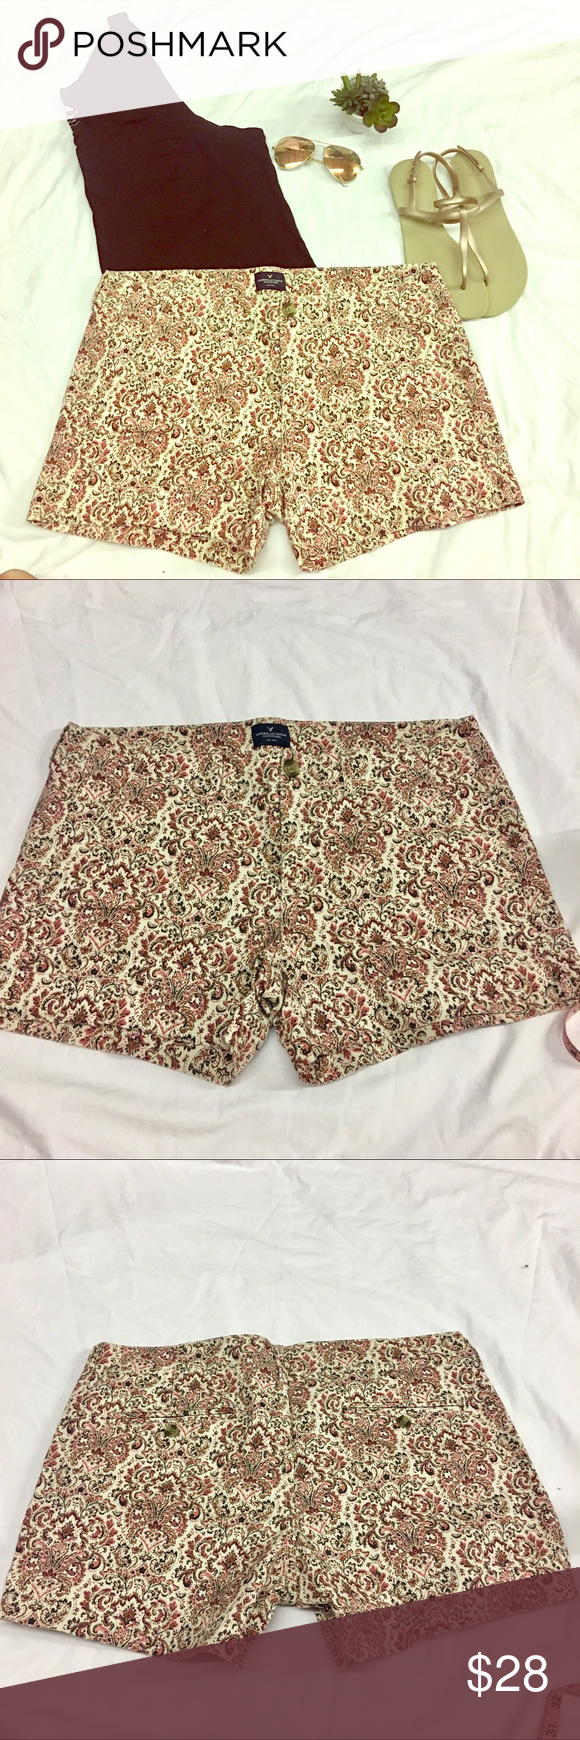 Paisley Shortie NWOT! The pink and red paisley print is the perfect combination of preppy and boho! Please refer to pictures for measurements and fabric content. Feel free to make an offer or I love to bundle so check out the rest of my closet! And as of right now no trades, I'm trying to clear out my closet because it's so full! 😂 American Eagle Outfitters Shorts